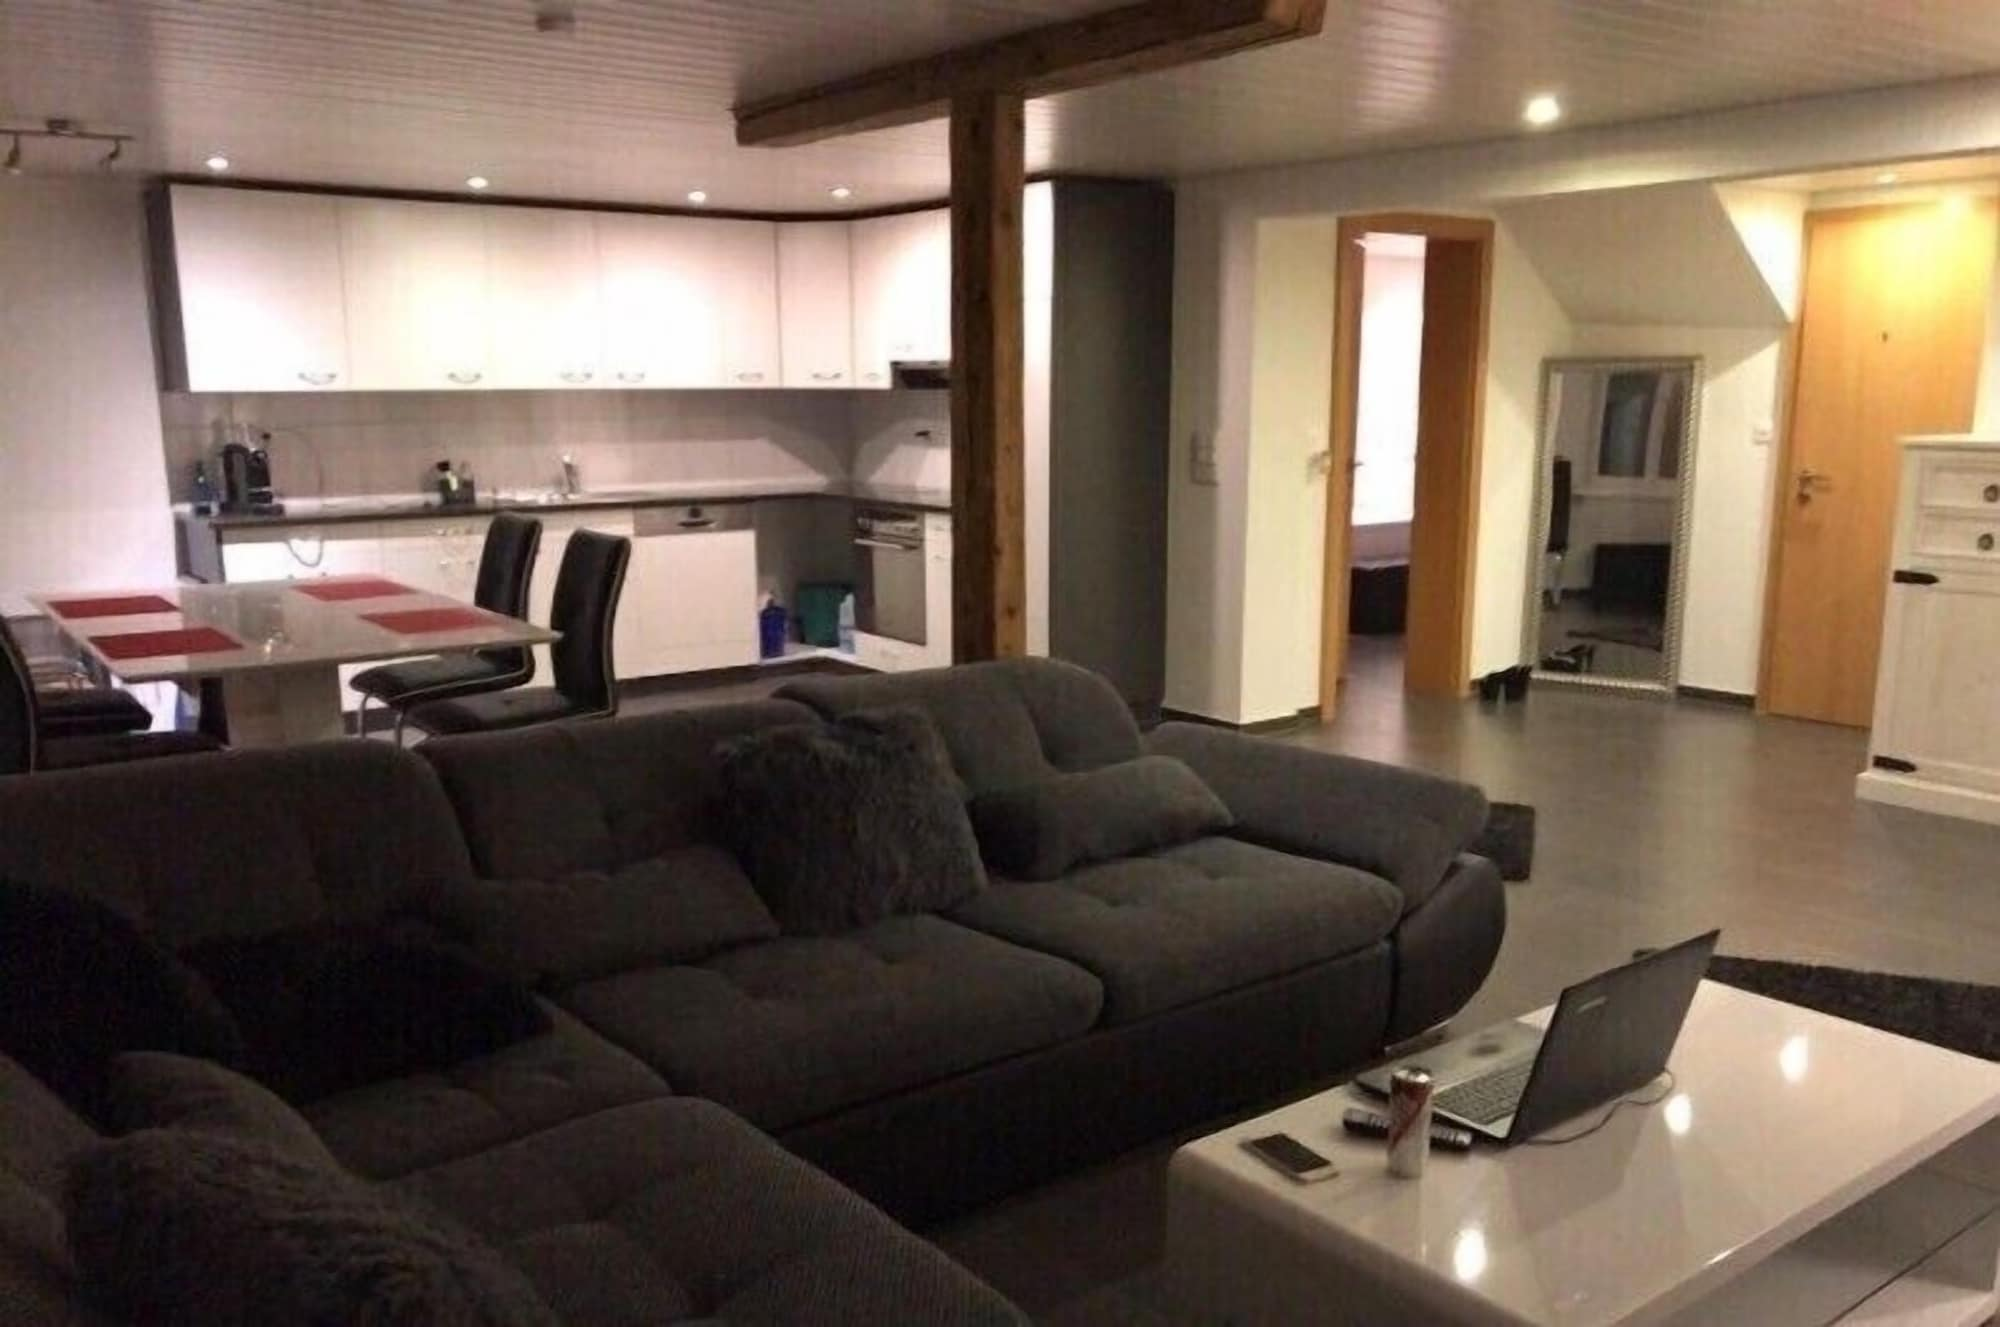 3 Bedroom Apartment at Lake Constance, Arbon